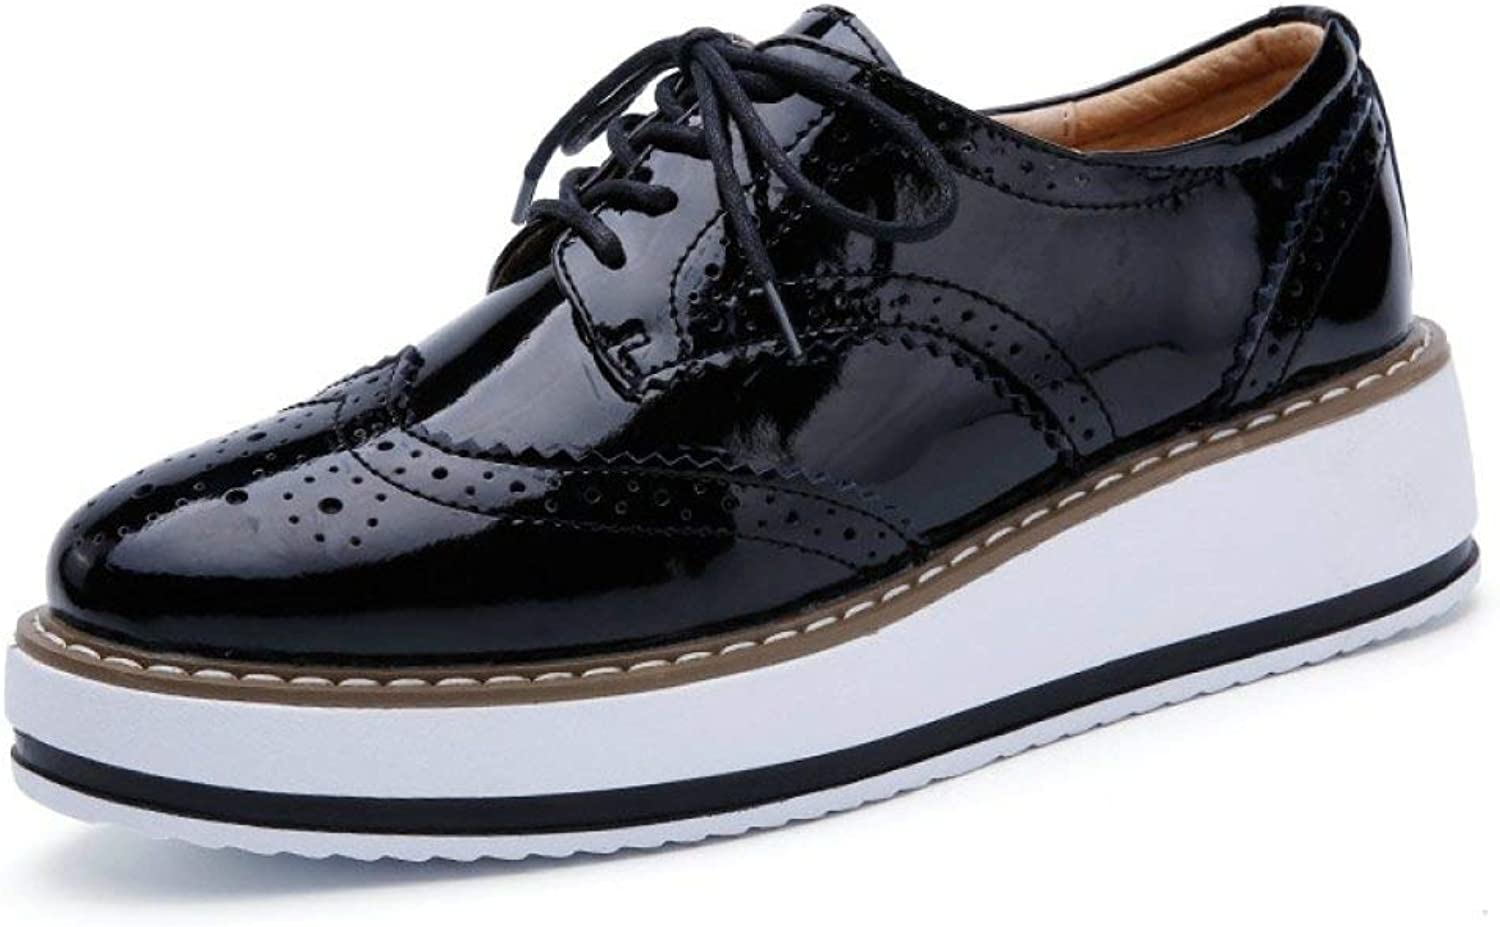 Fay Waters Women's Patent Leather Platform Oxfords Lace-up Mid Heel Brogue Wingtip Perforated Wedge shoes